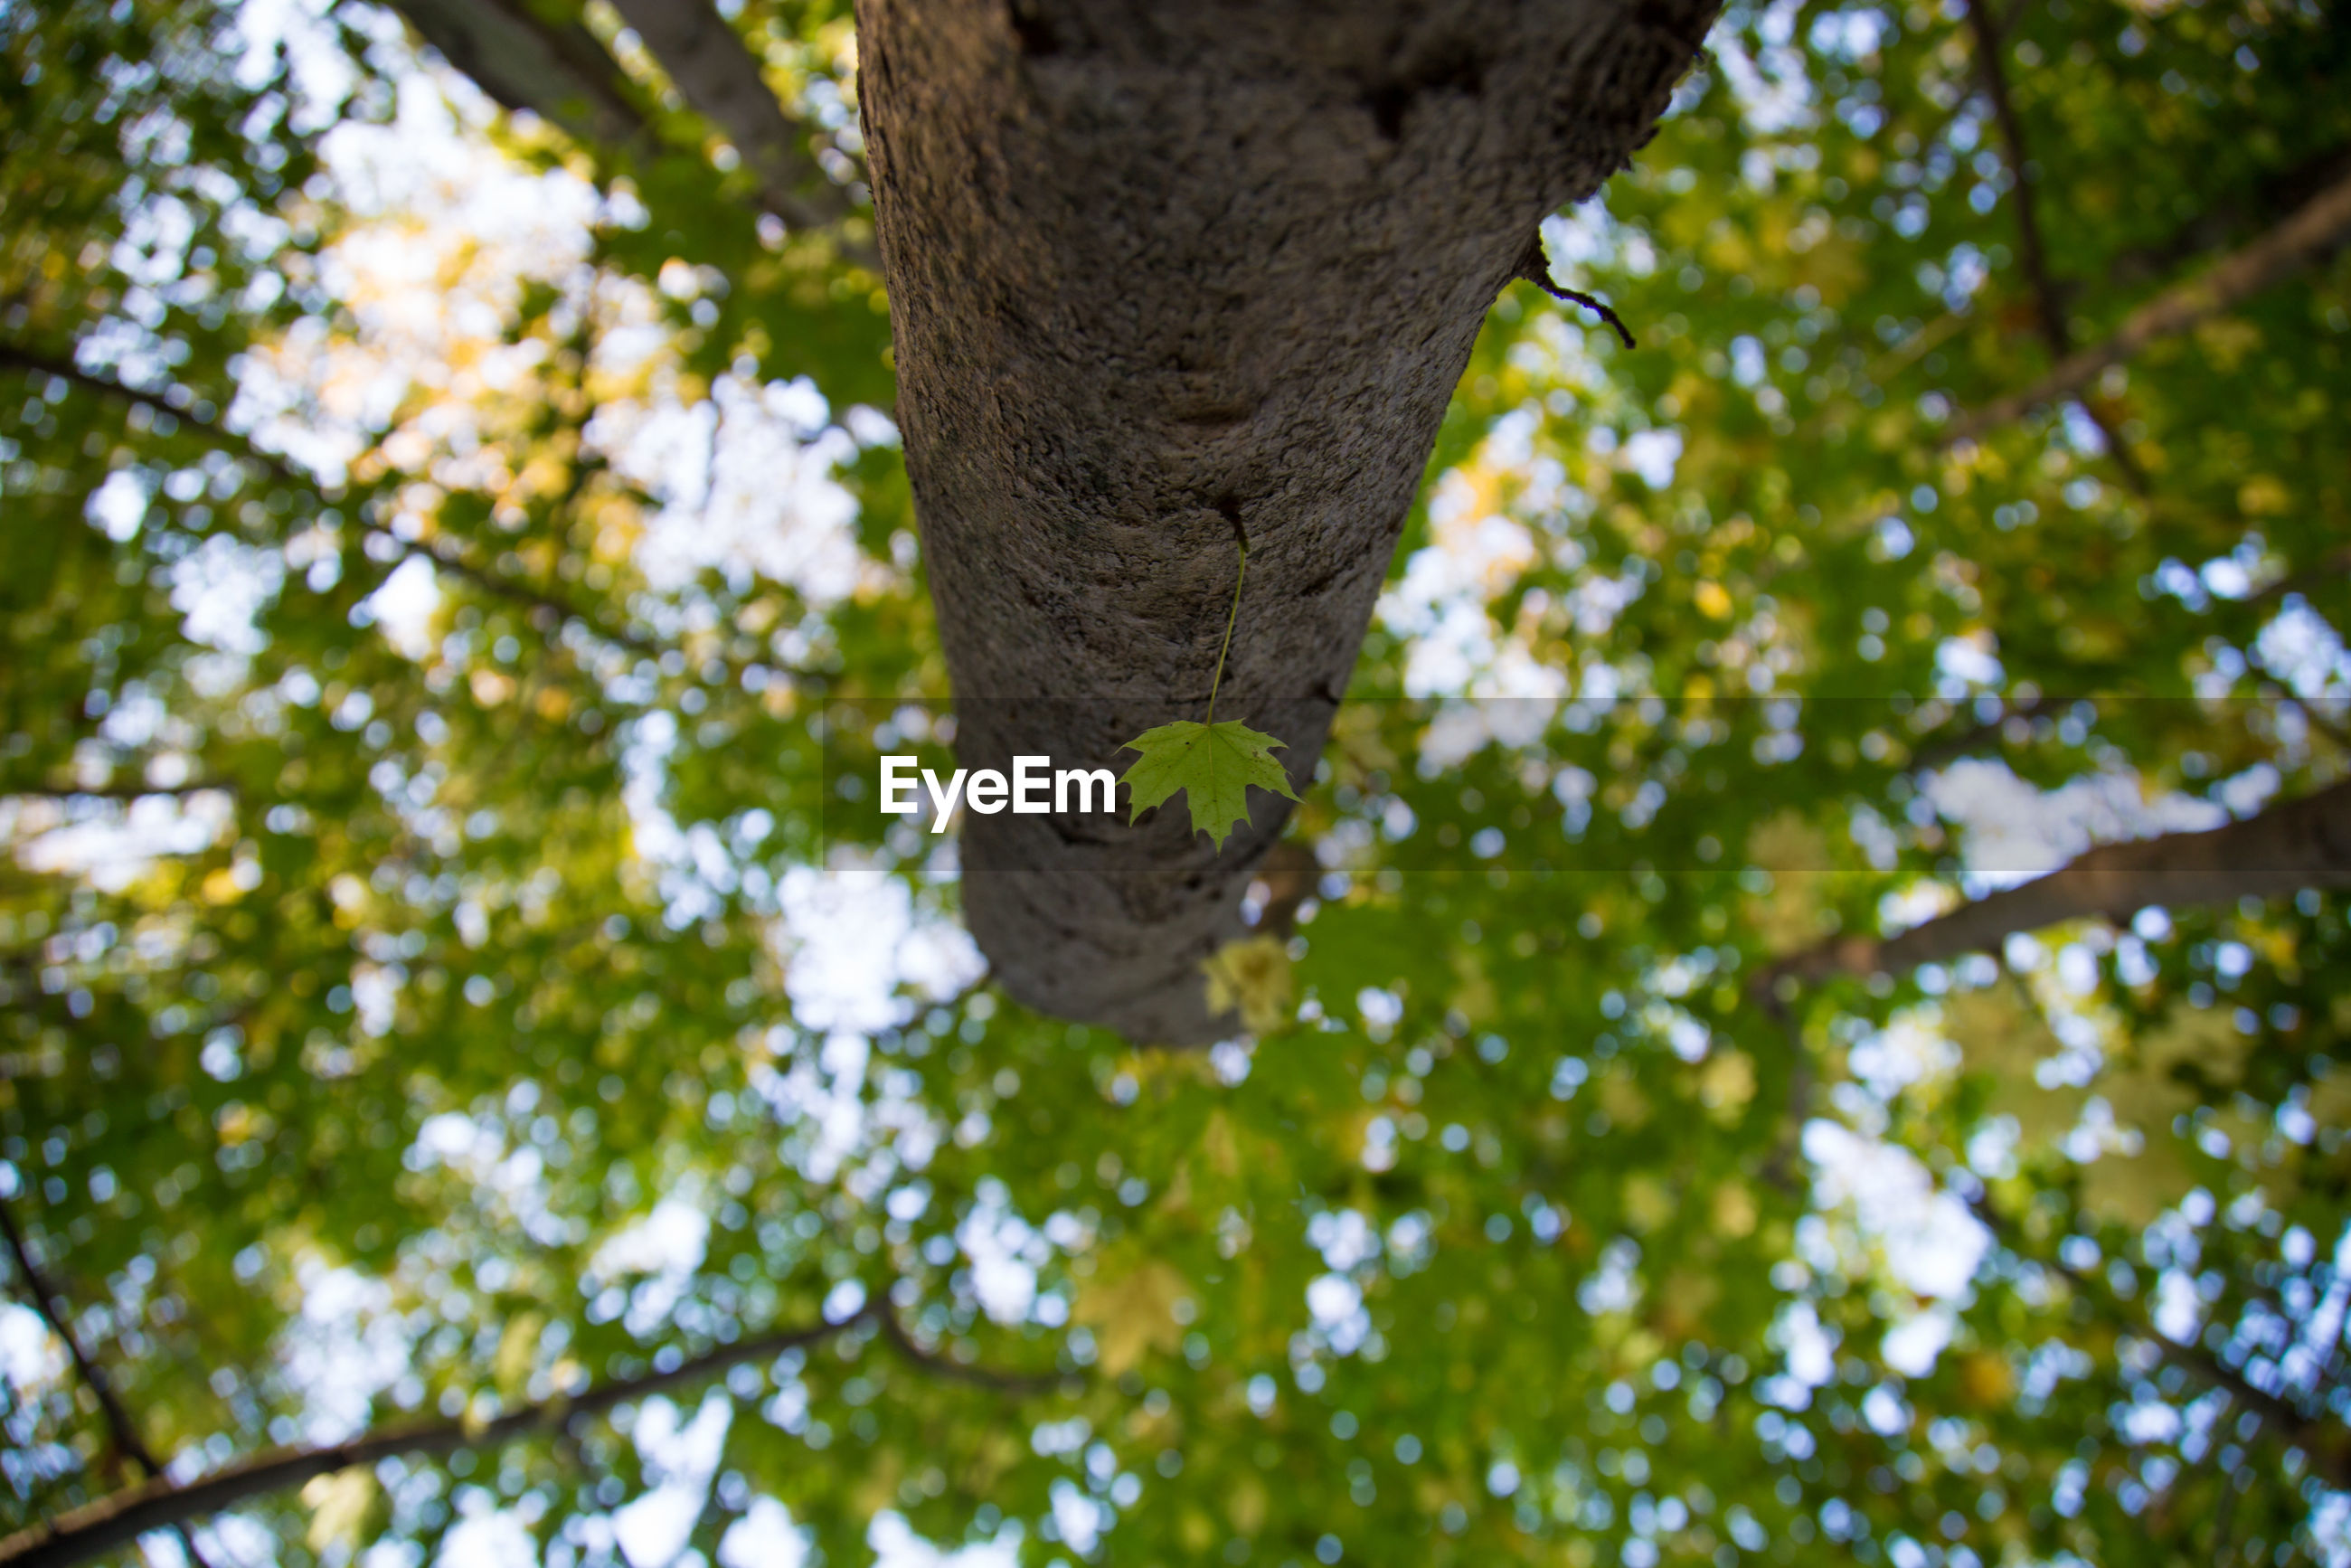 tree, low angle view, growth, nature, branch, day, green color, outdoors, tree trunk, focus on foreground, leaf, no people, forest, beauty in nature, close-up, animal themes